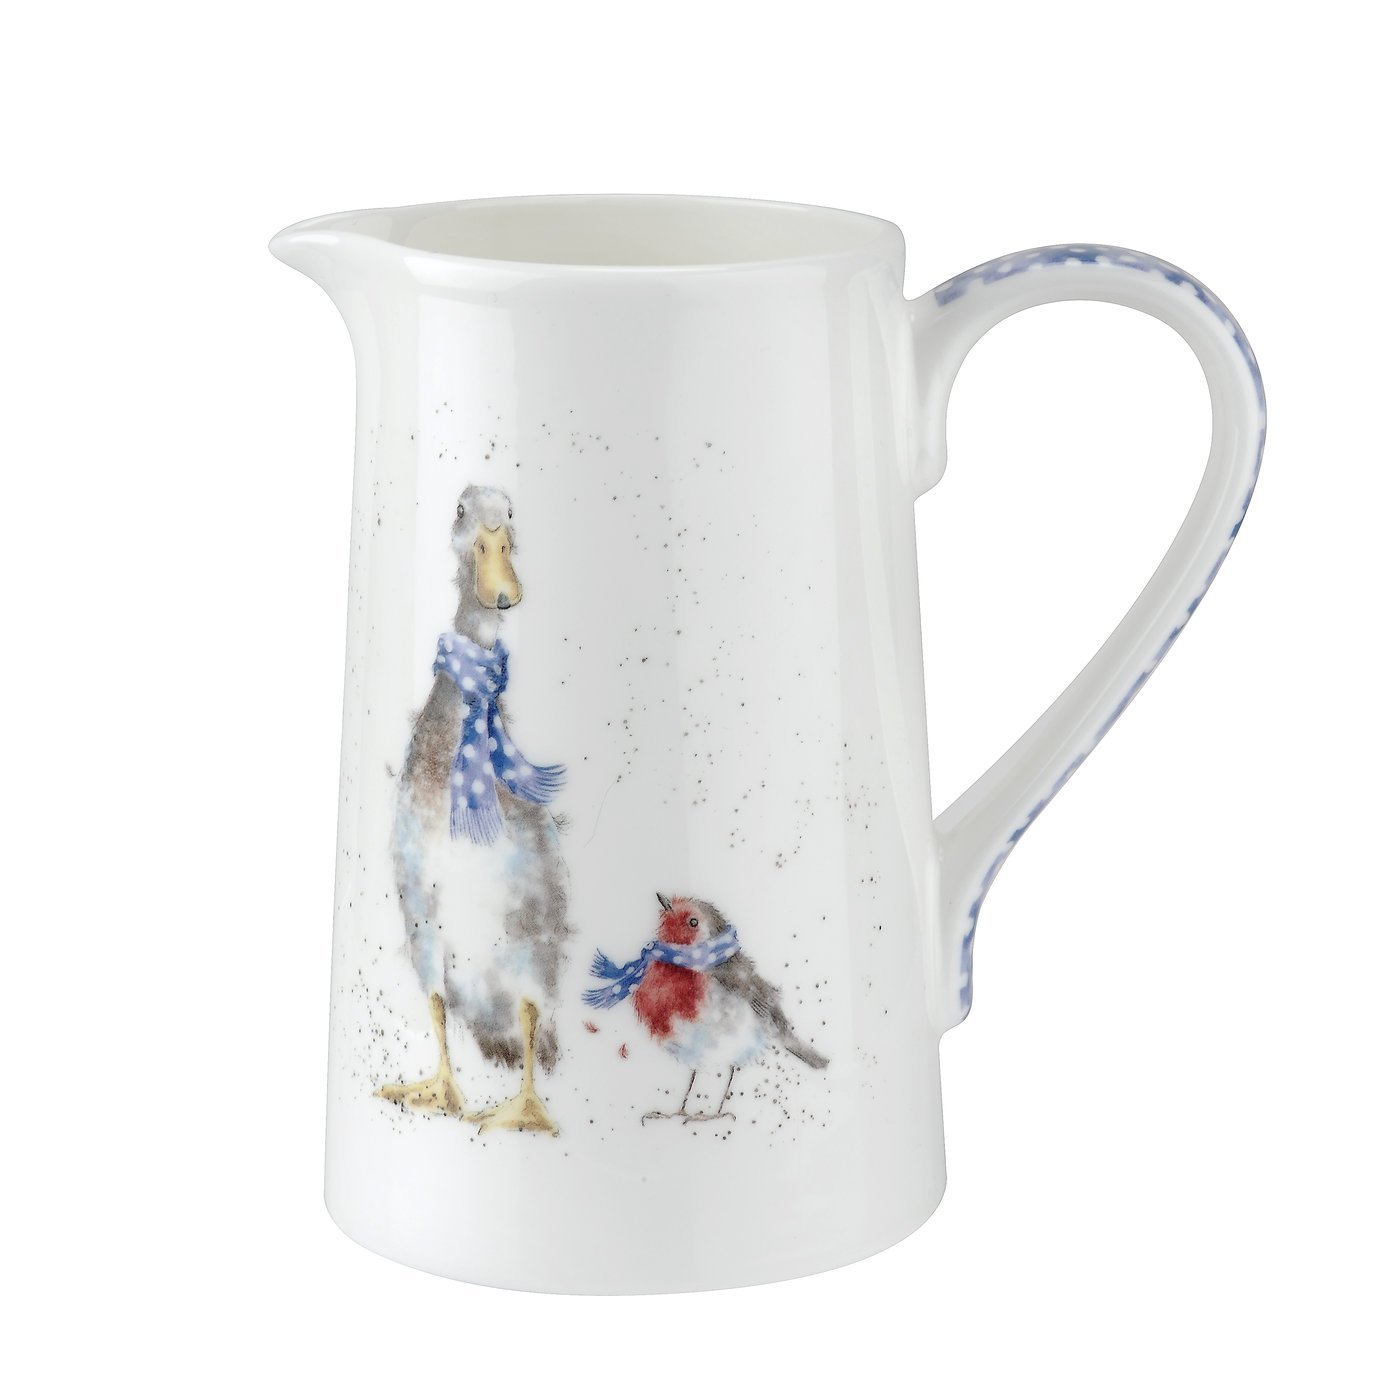 Wrendale Jug (Duck & Robin) 1 pint, multi colour Royal Worcester